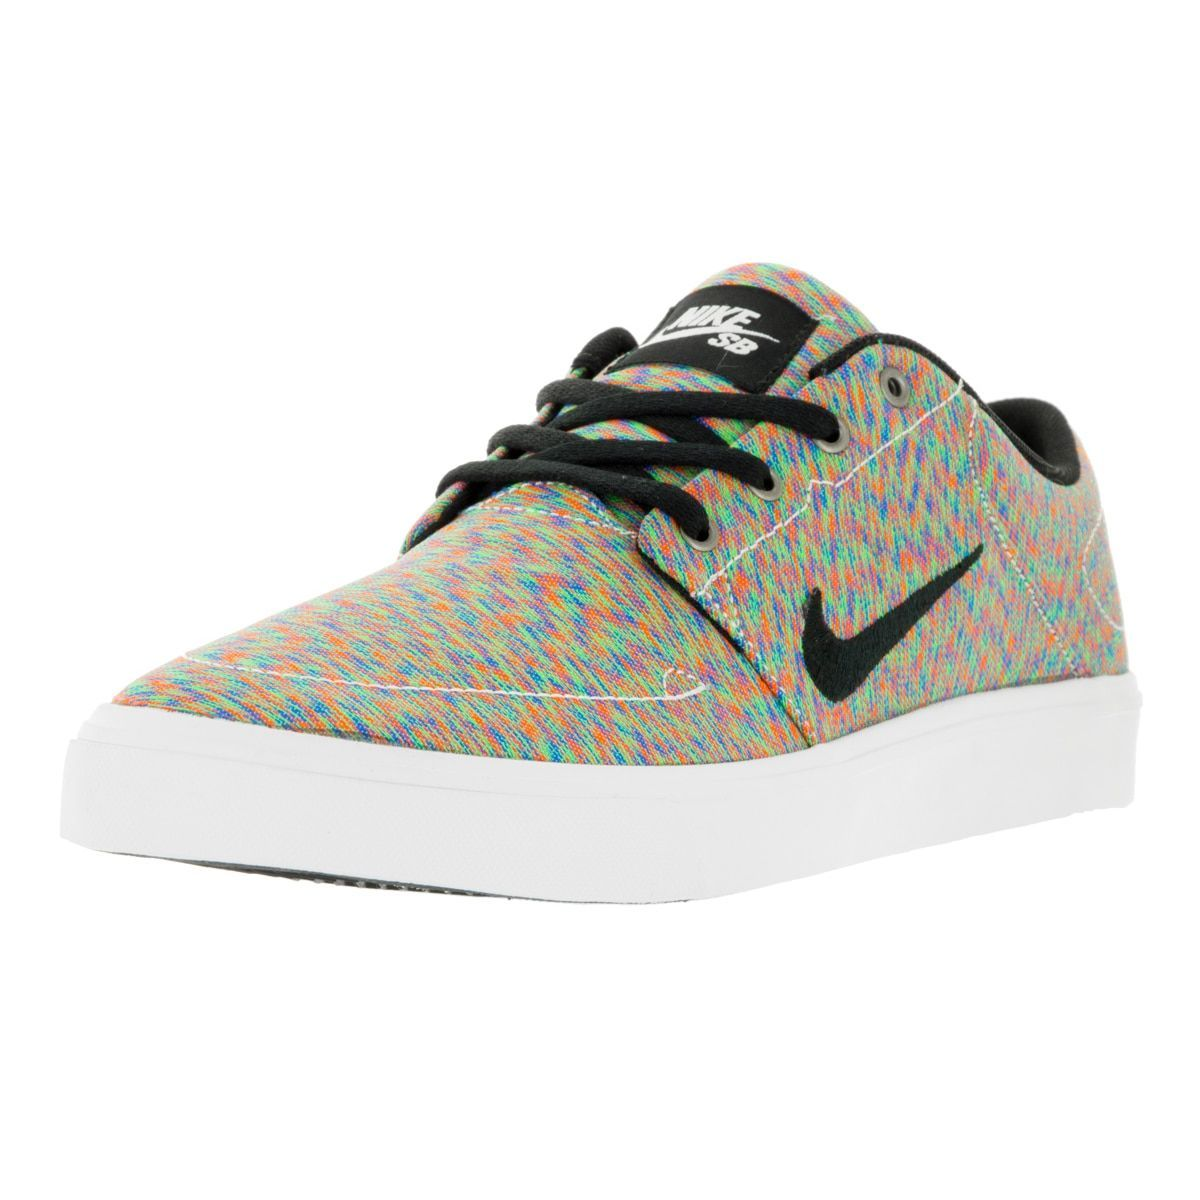 Nike Men's SB Portmore Cnvs Premium -Color/Black/White Skate Shoe